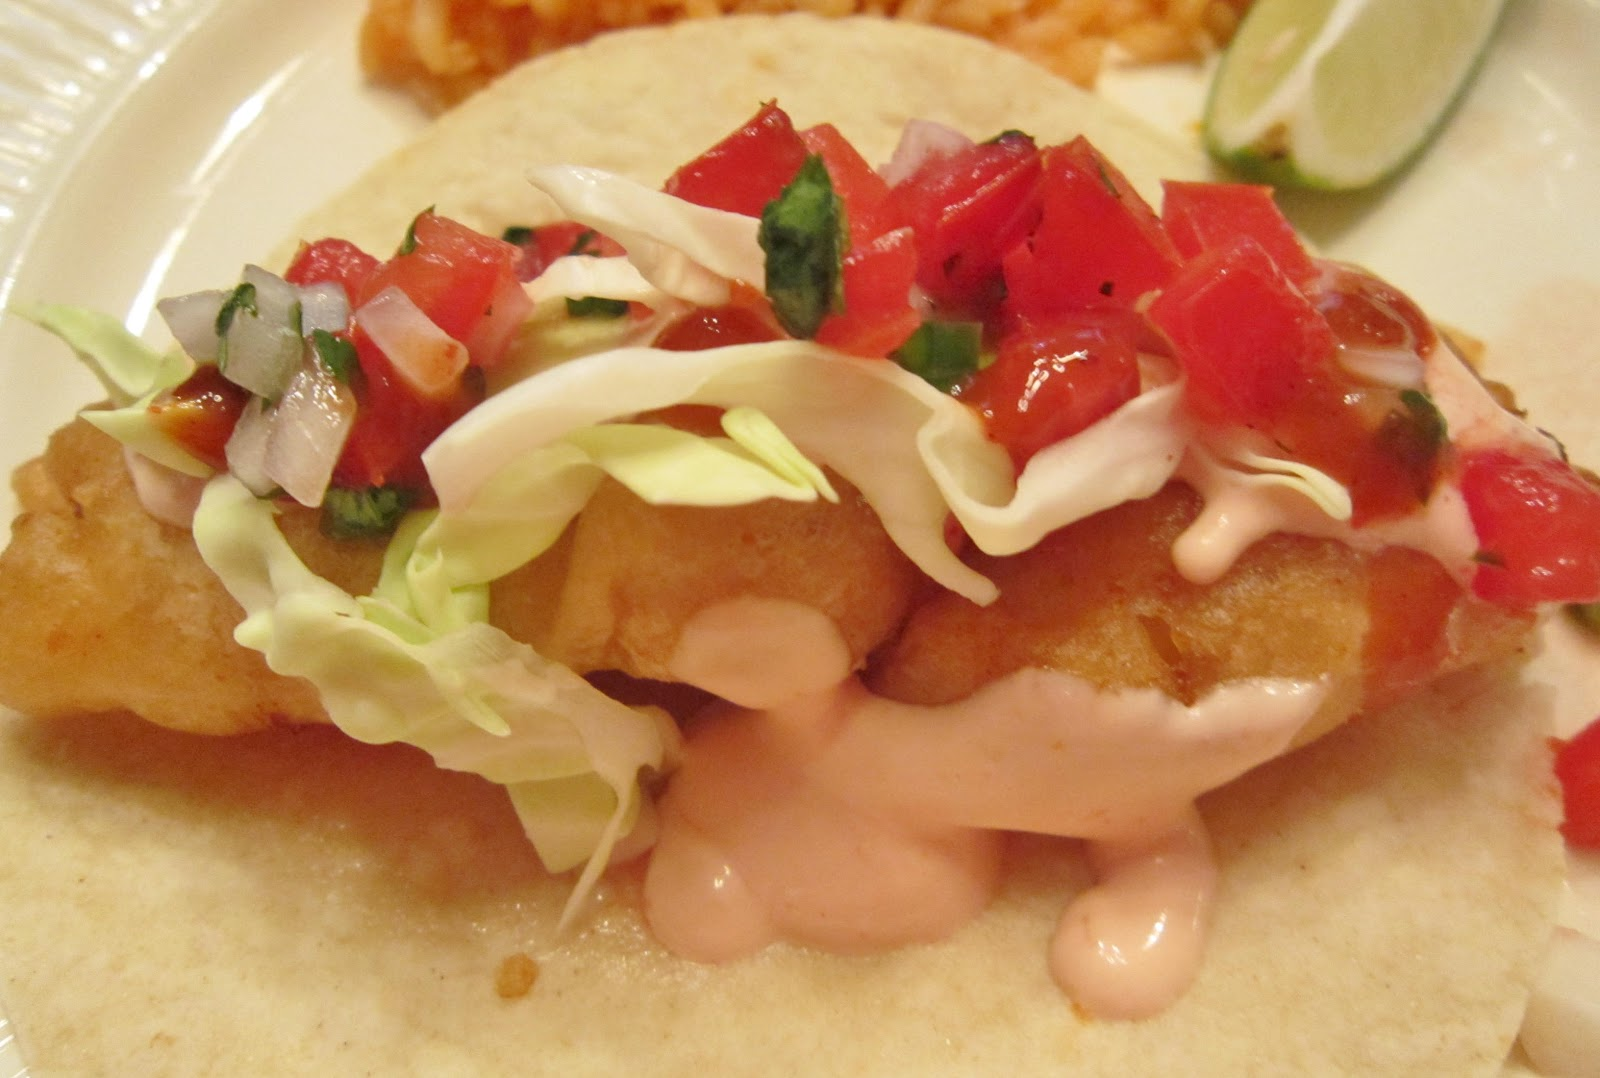 Dinner night sparkling city by the sea and fish tacos for Authentic fish tacos